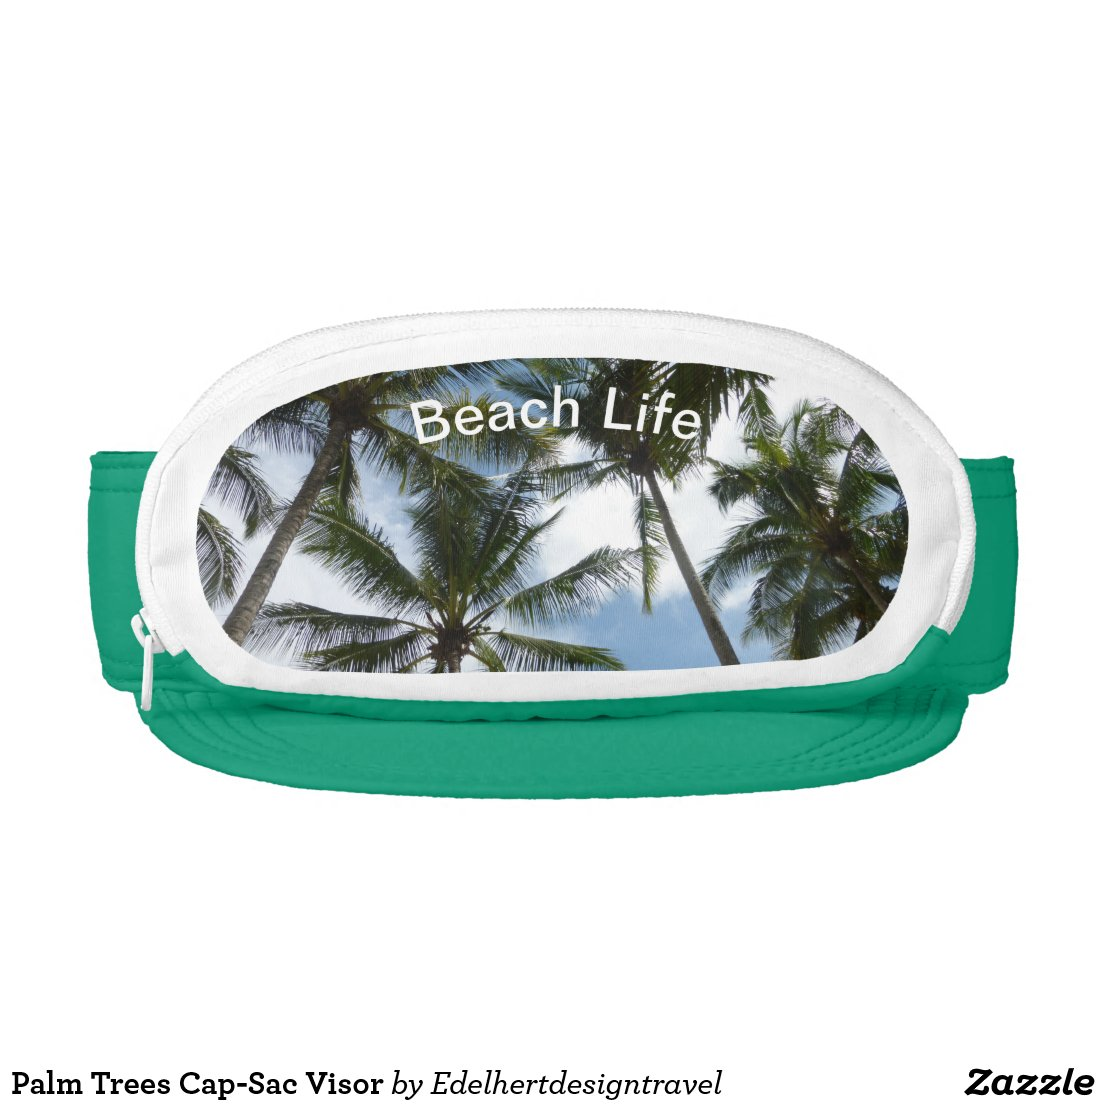 Palm Trees Cap-Sac Visor